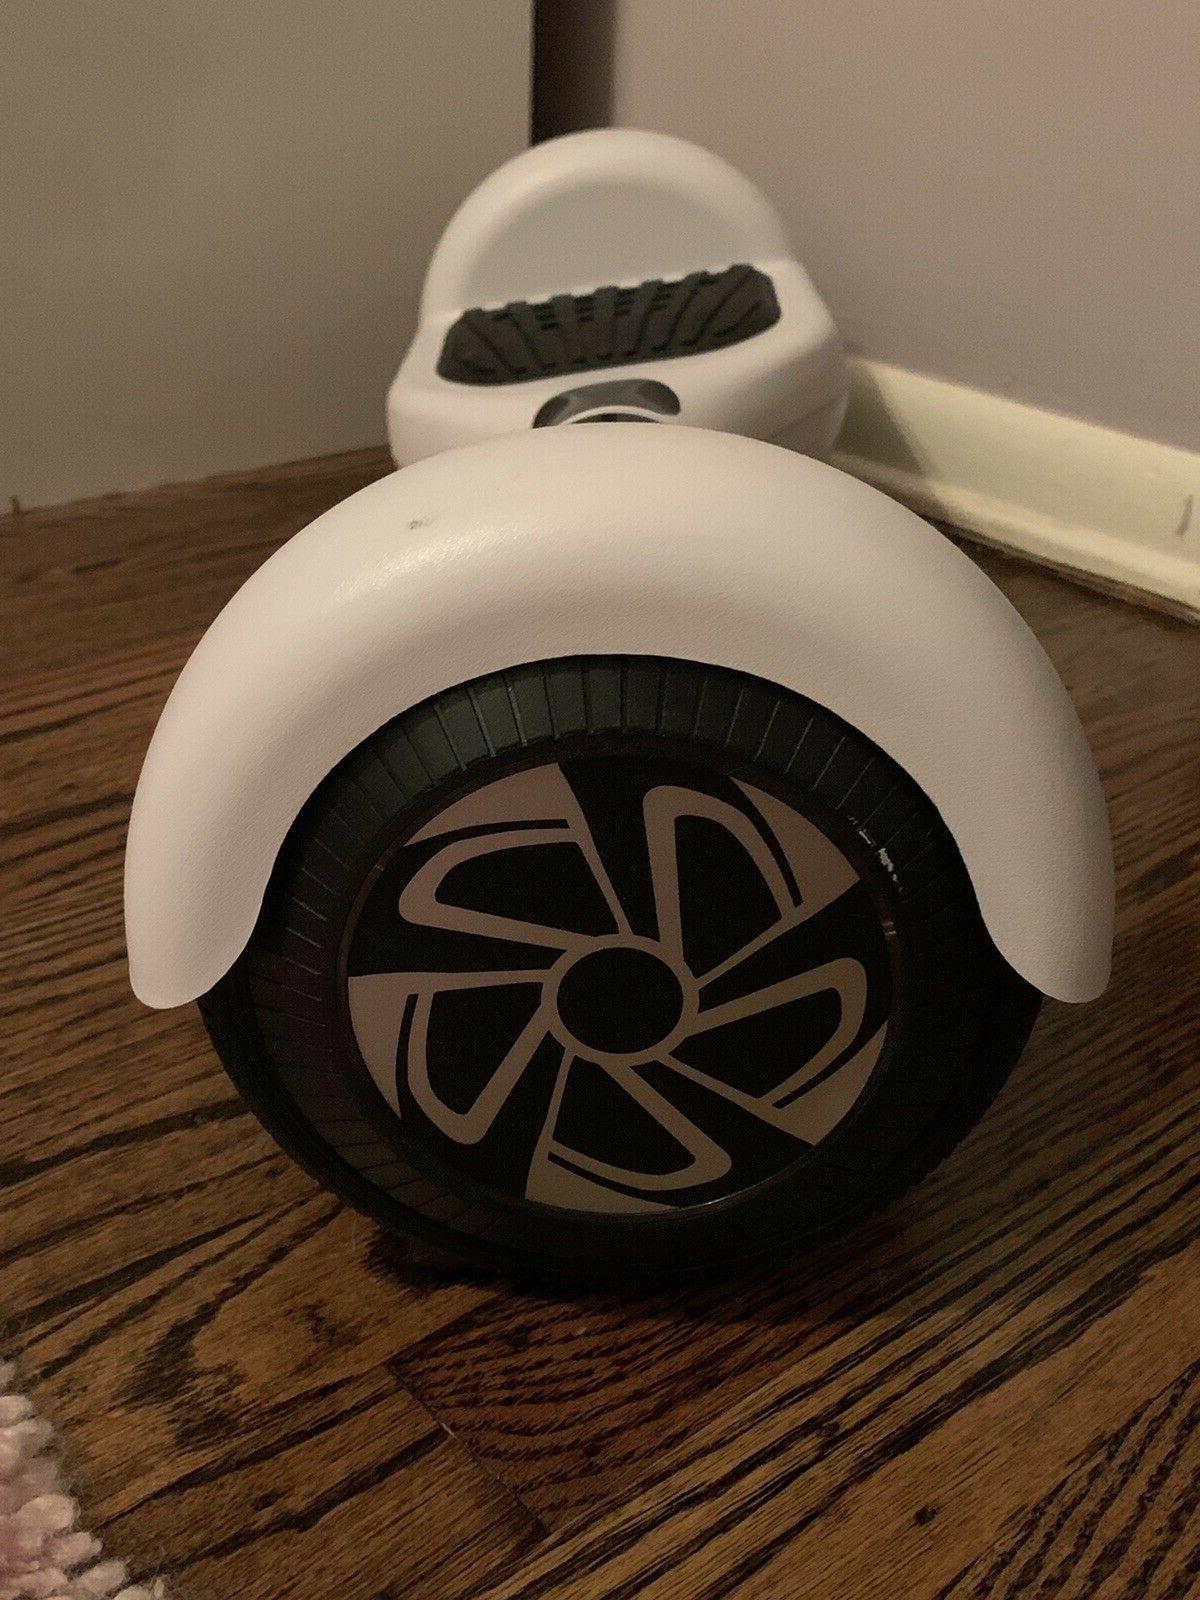 Felimoda Self Hoverboard with Light w/ Travel